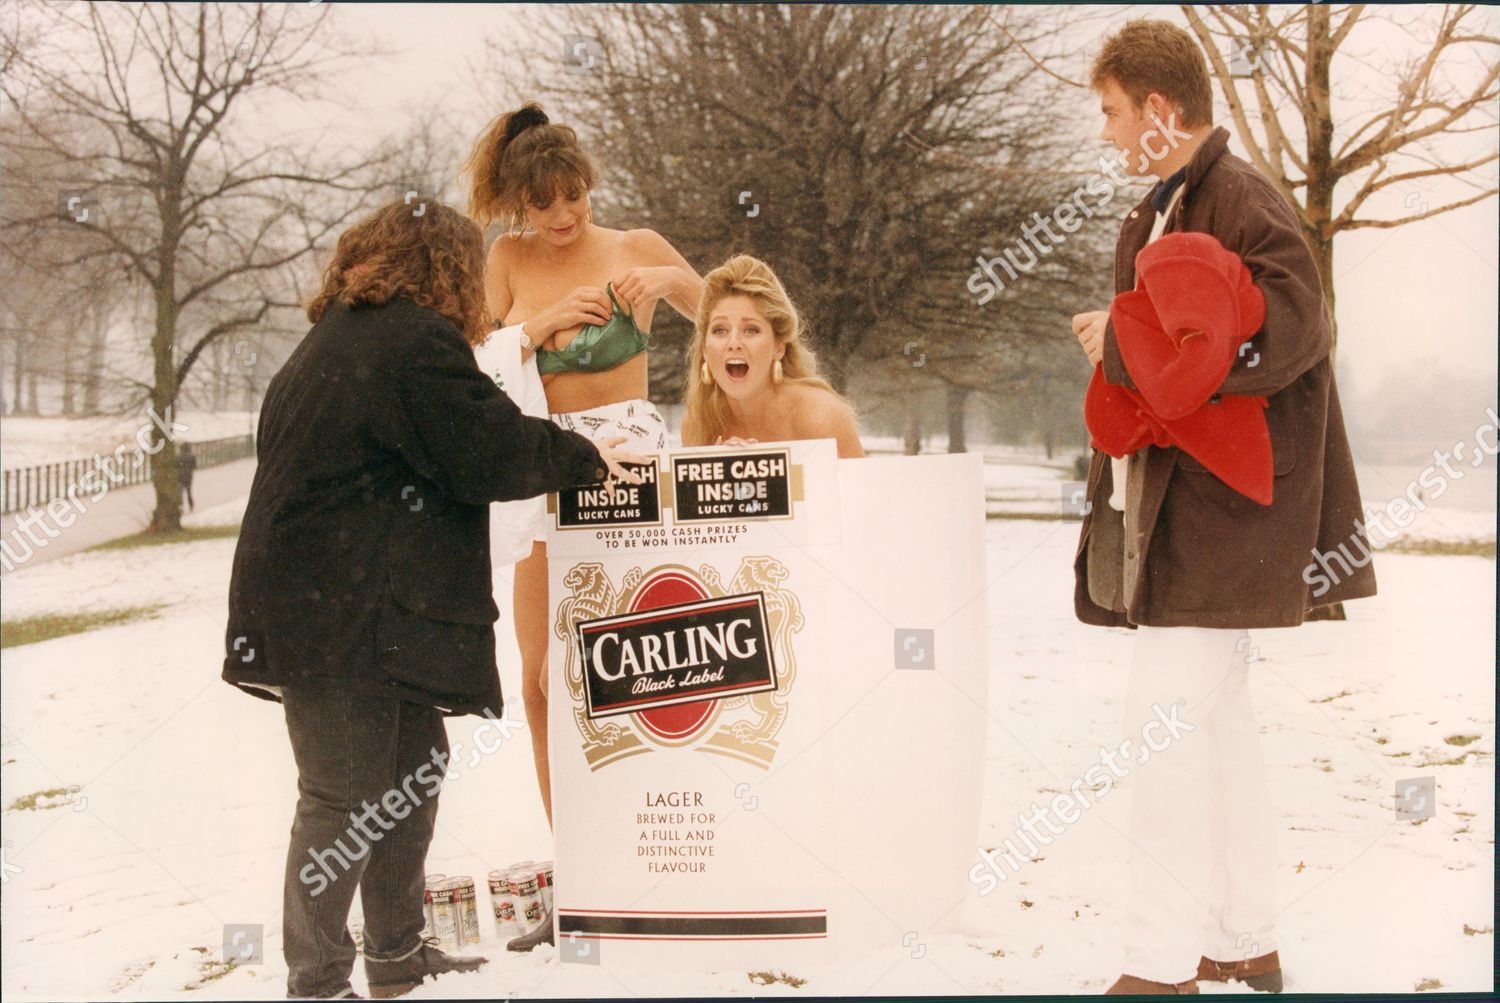 74986814_winter-1993-hyde-park-photo-call-for-carling-cash-in-a-can-promotion-picture-sho.jpg